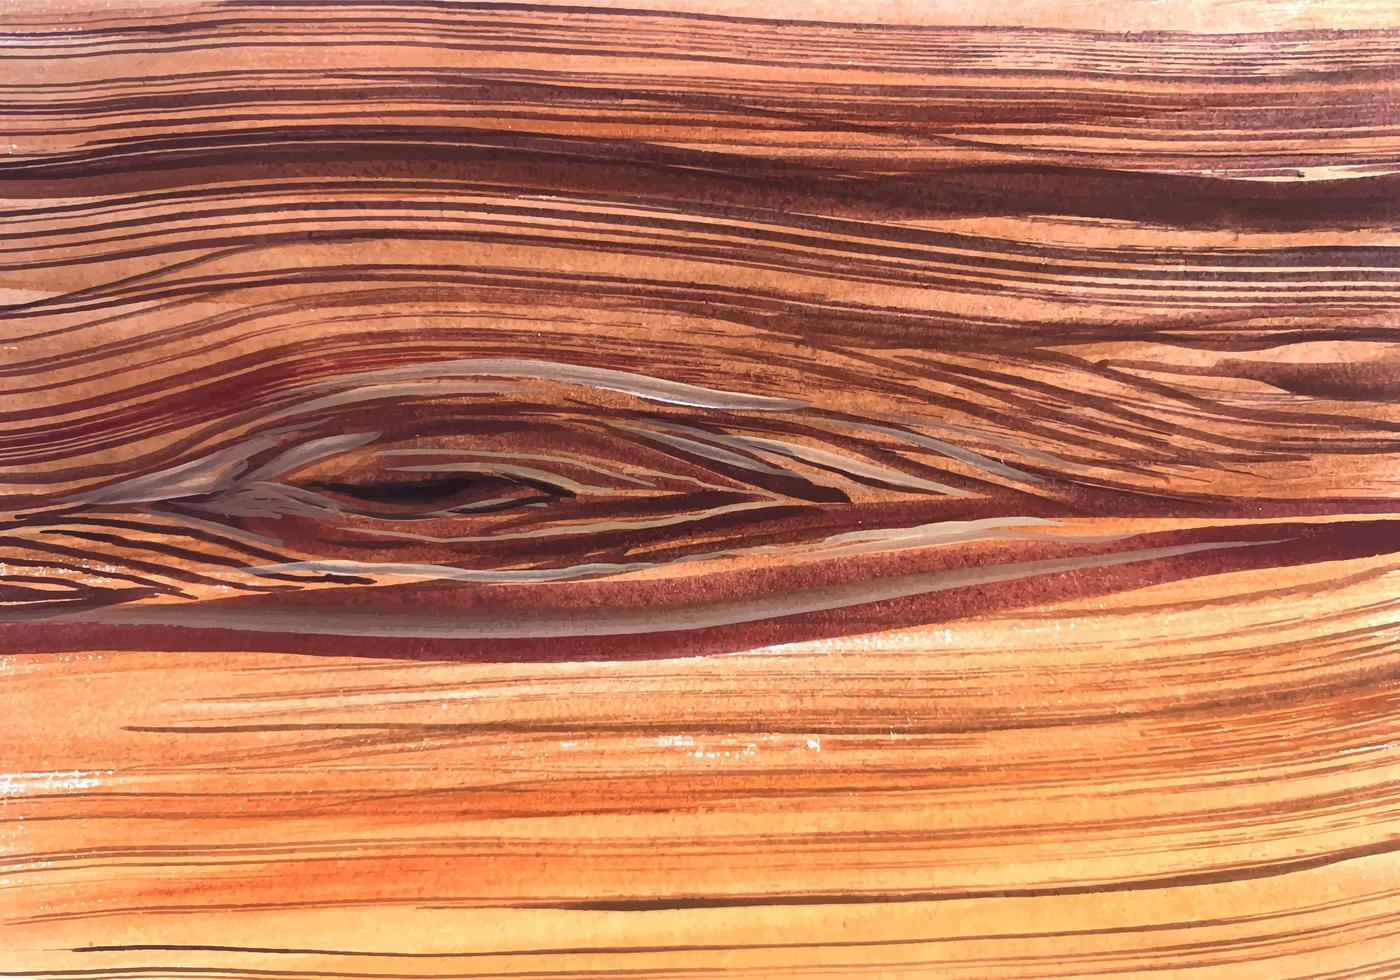 Abstract Cedar Swirl Wood Texture vector